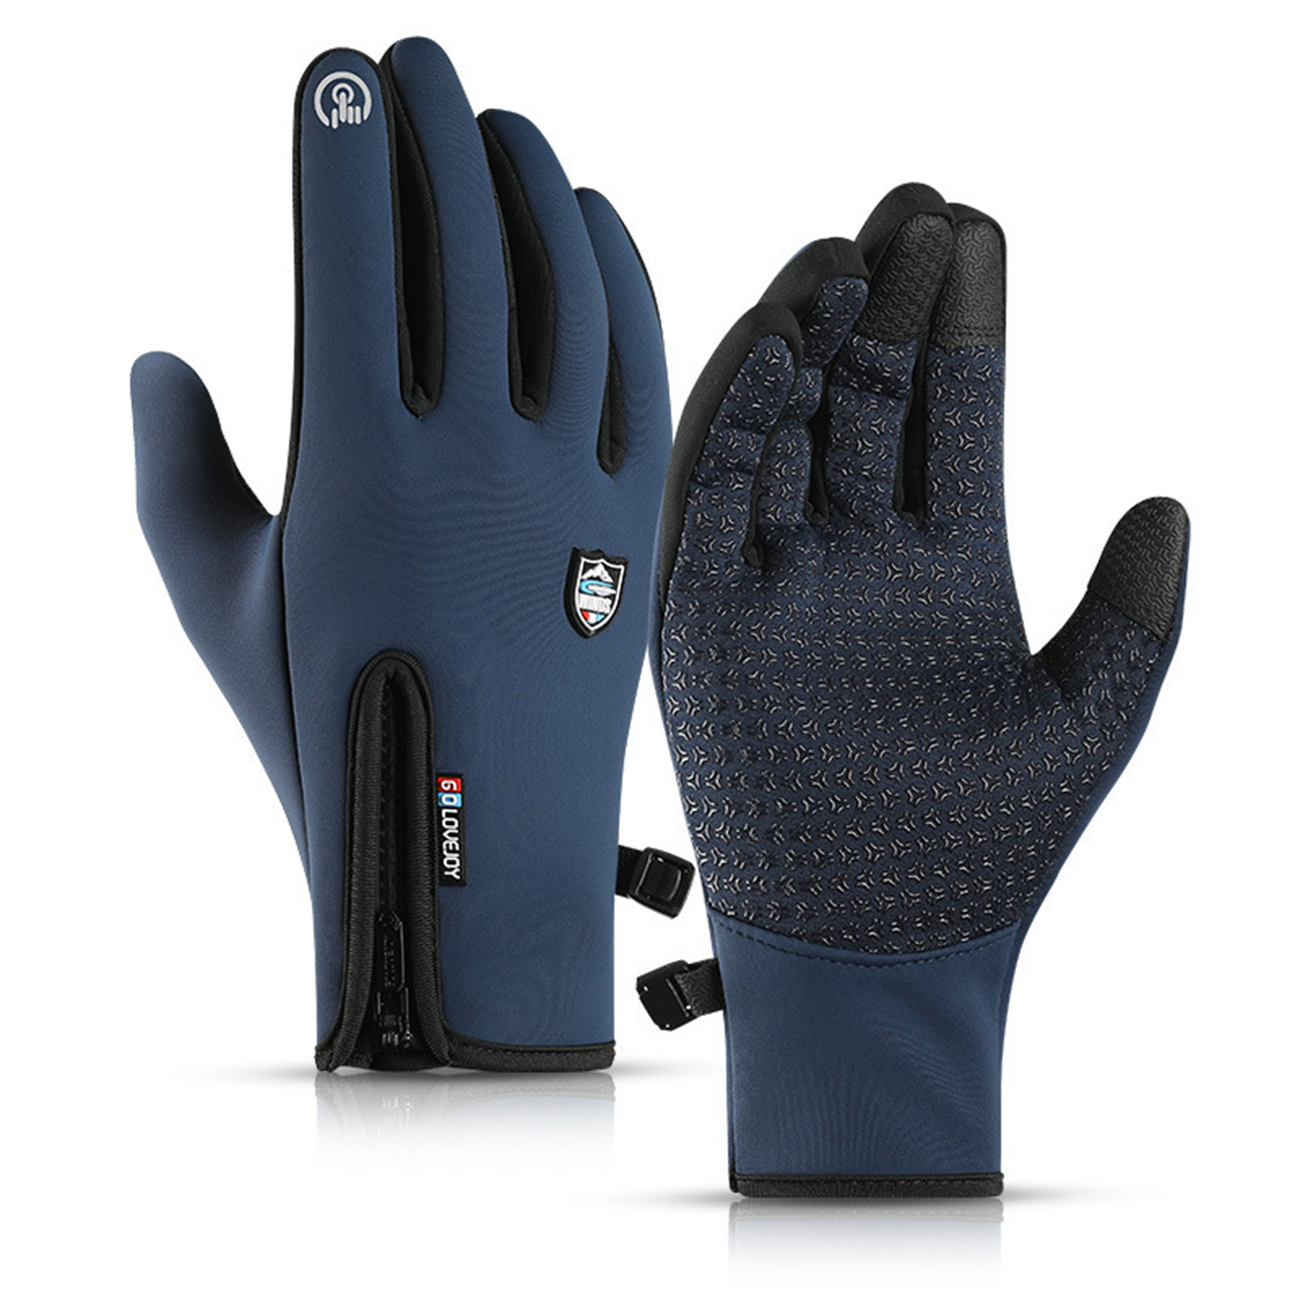 Capable Golovejoy Db42 Touchscreen Winter Full Finger Thermal Fleece Gloves Anti-slip Gloves Cycling Running Hiking Climbing Outdoor We Take Customers As Our Gods